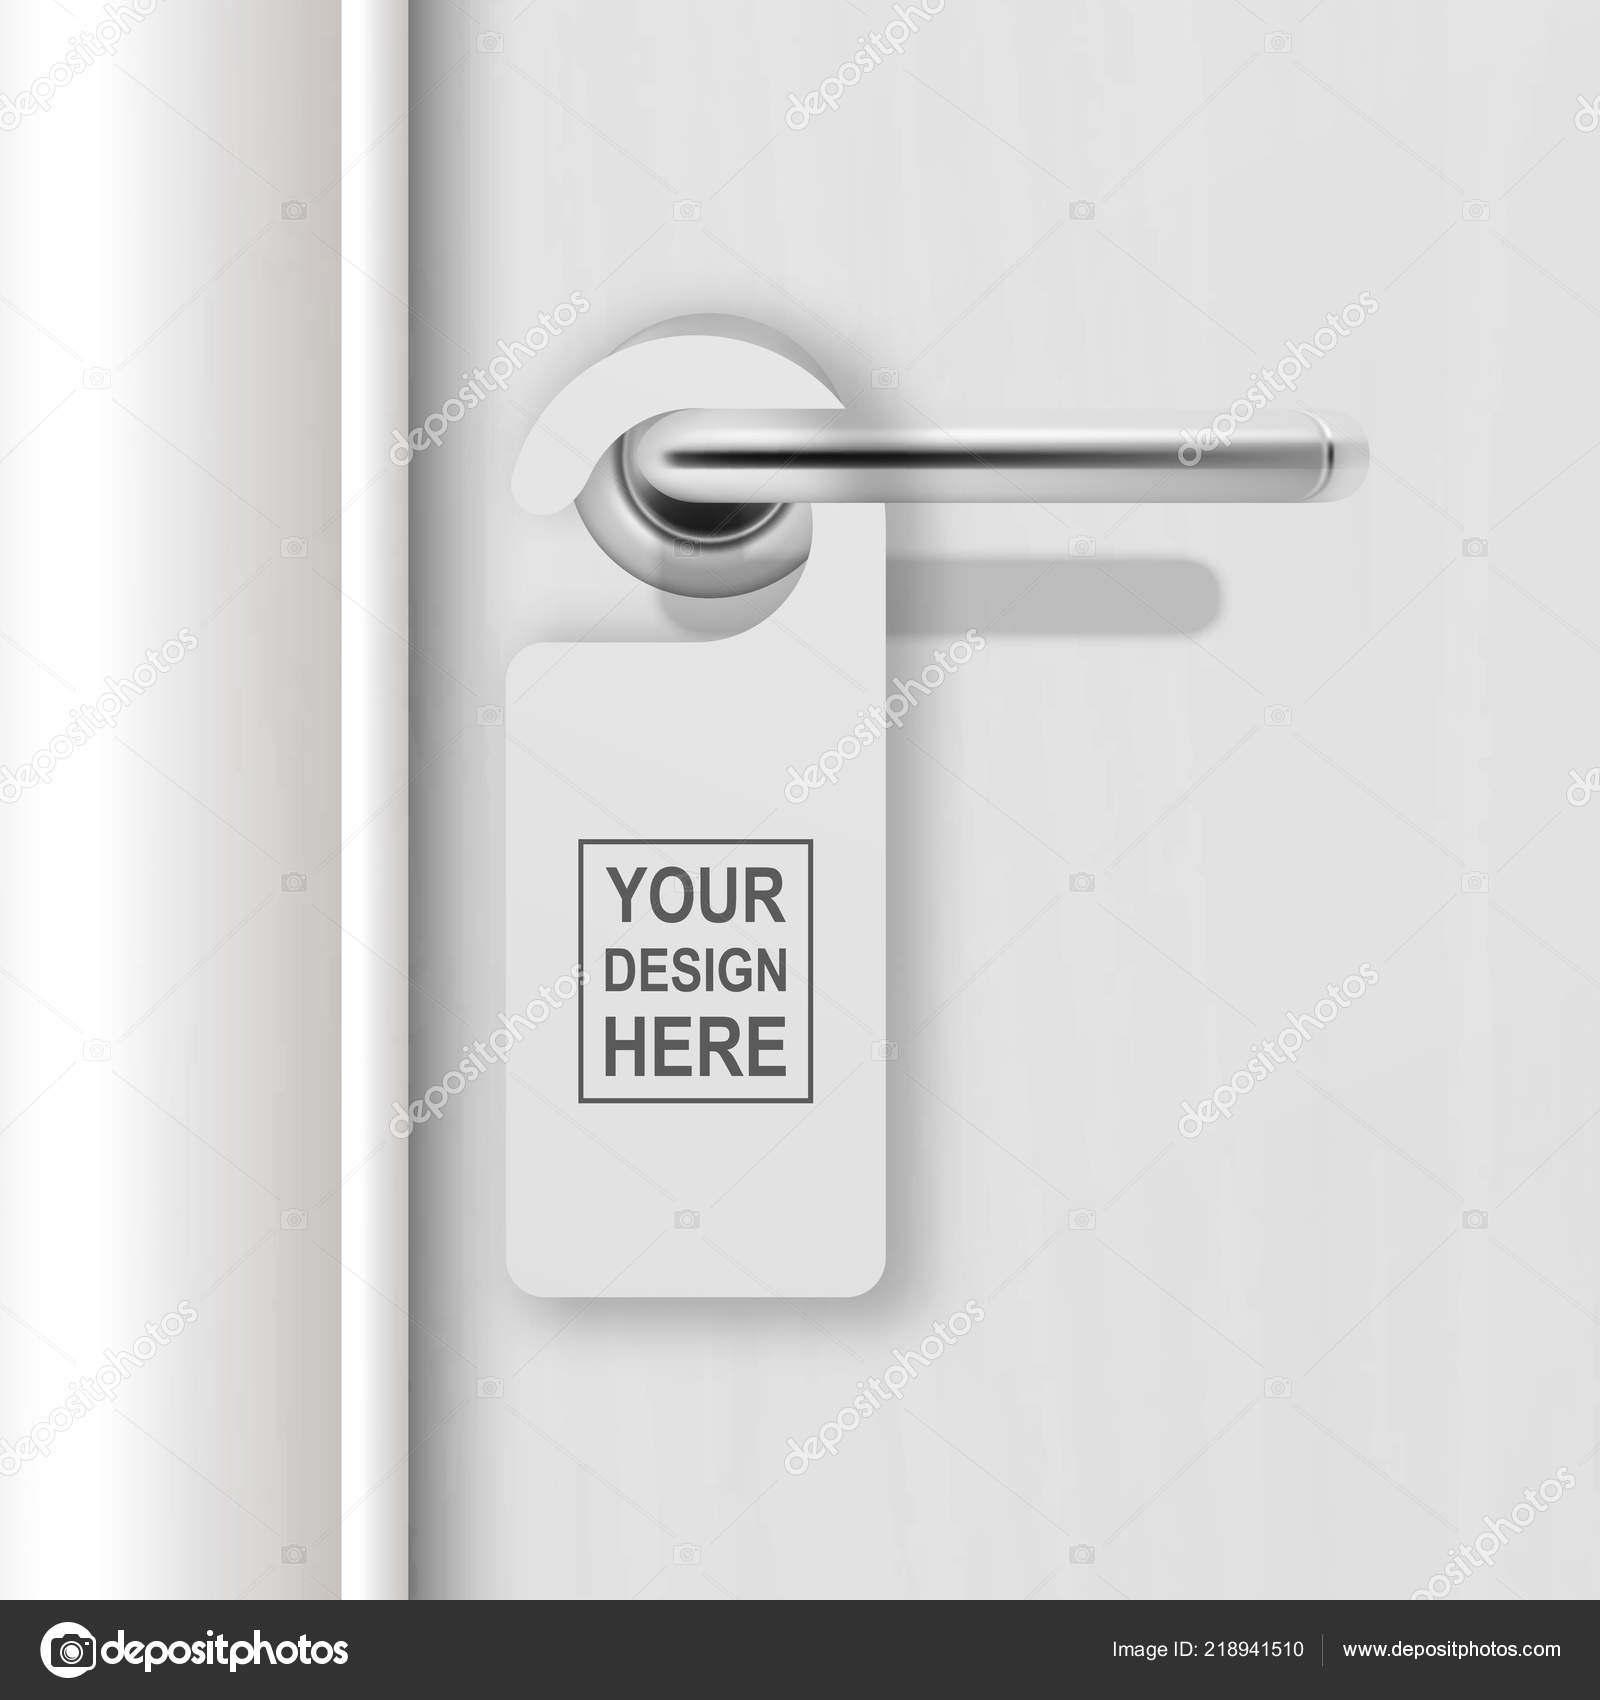 Vector Realistic Paper White Blank Door Hanger On White Realistic